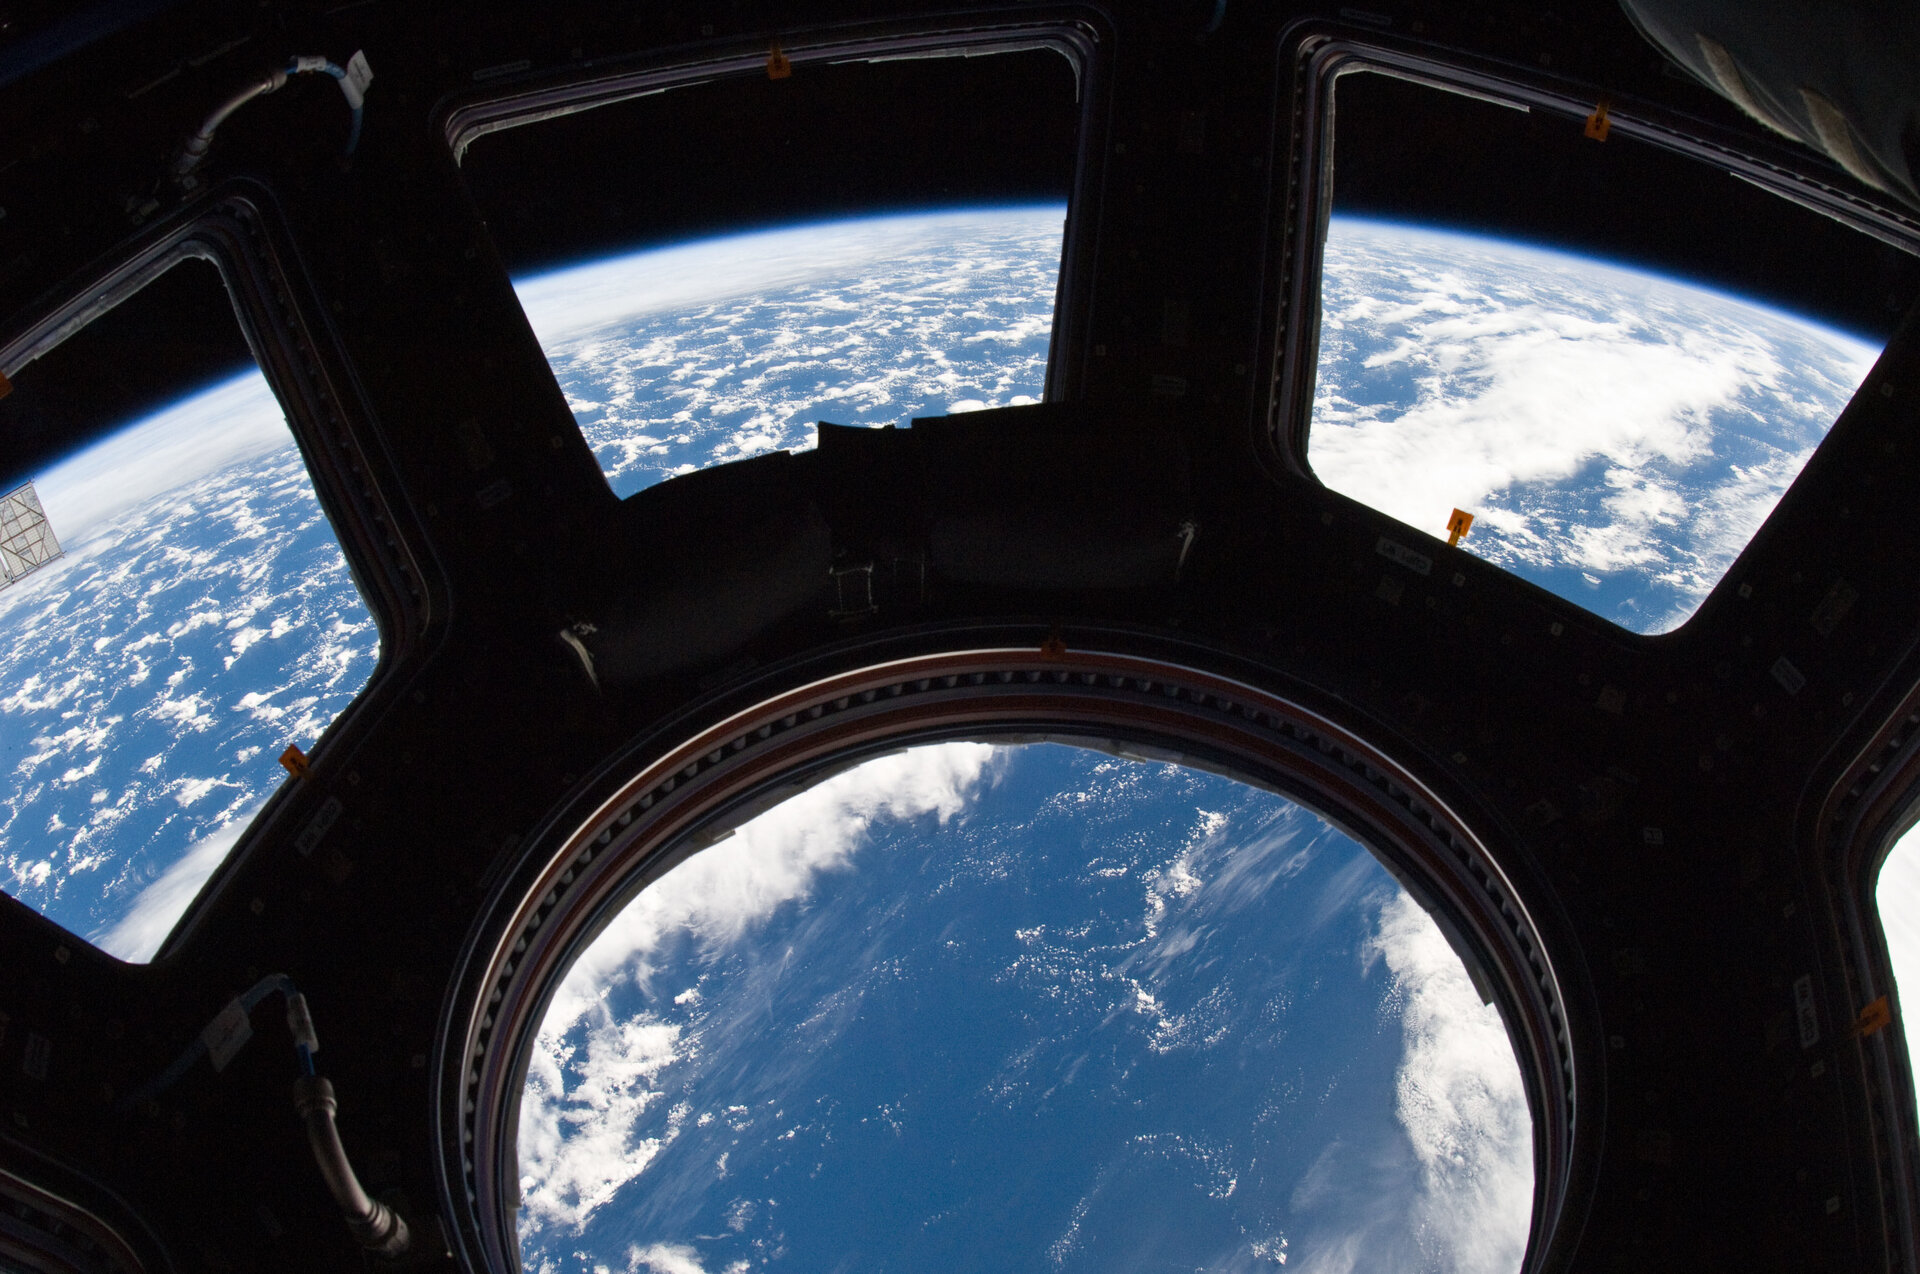 Earth and its horizon seen through the windows in Cupola